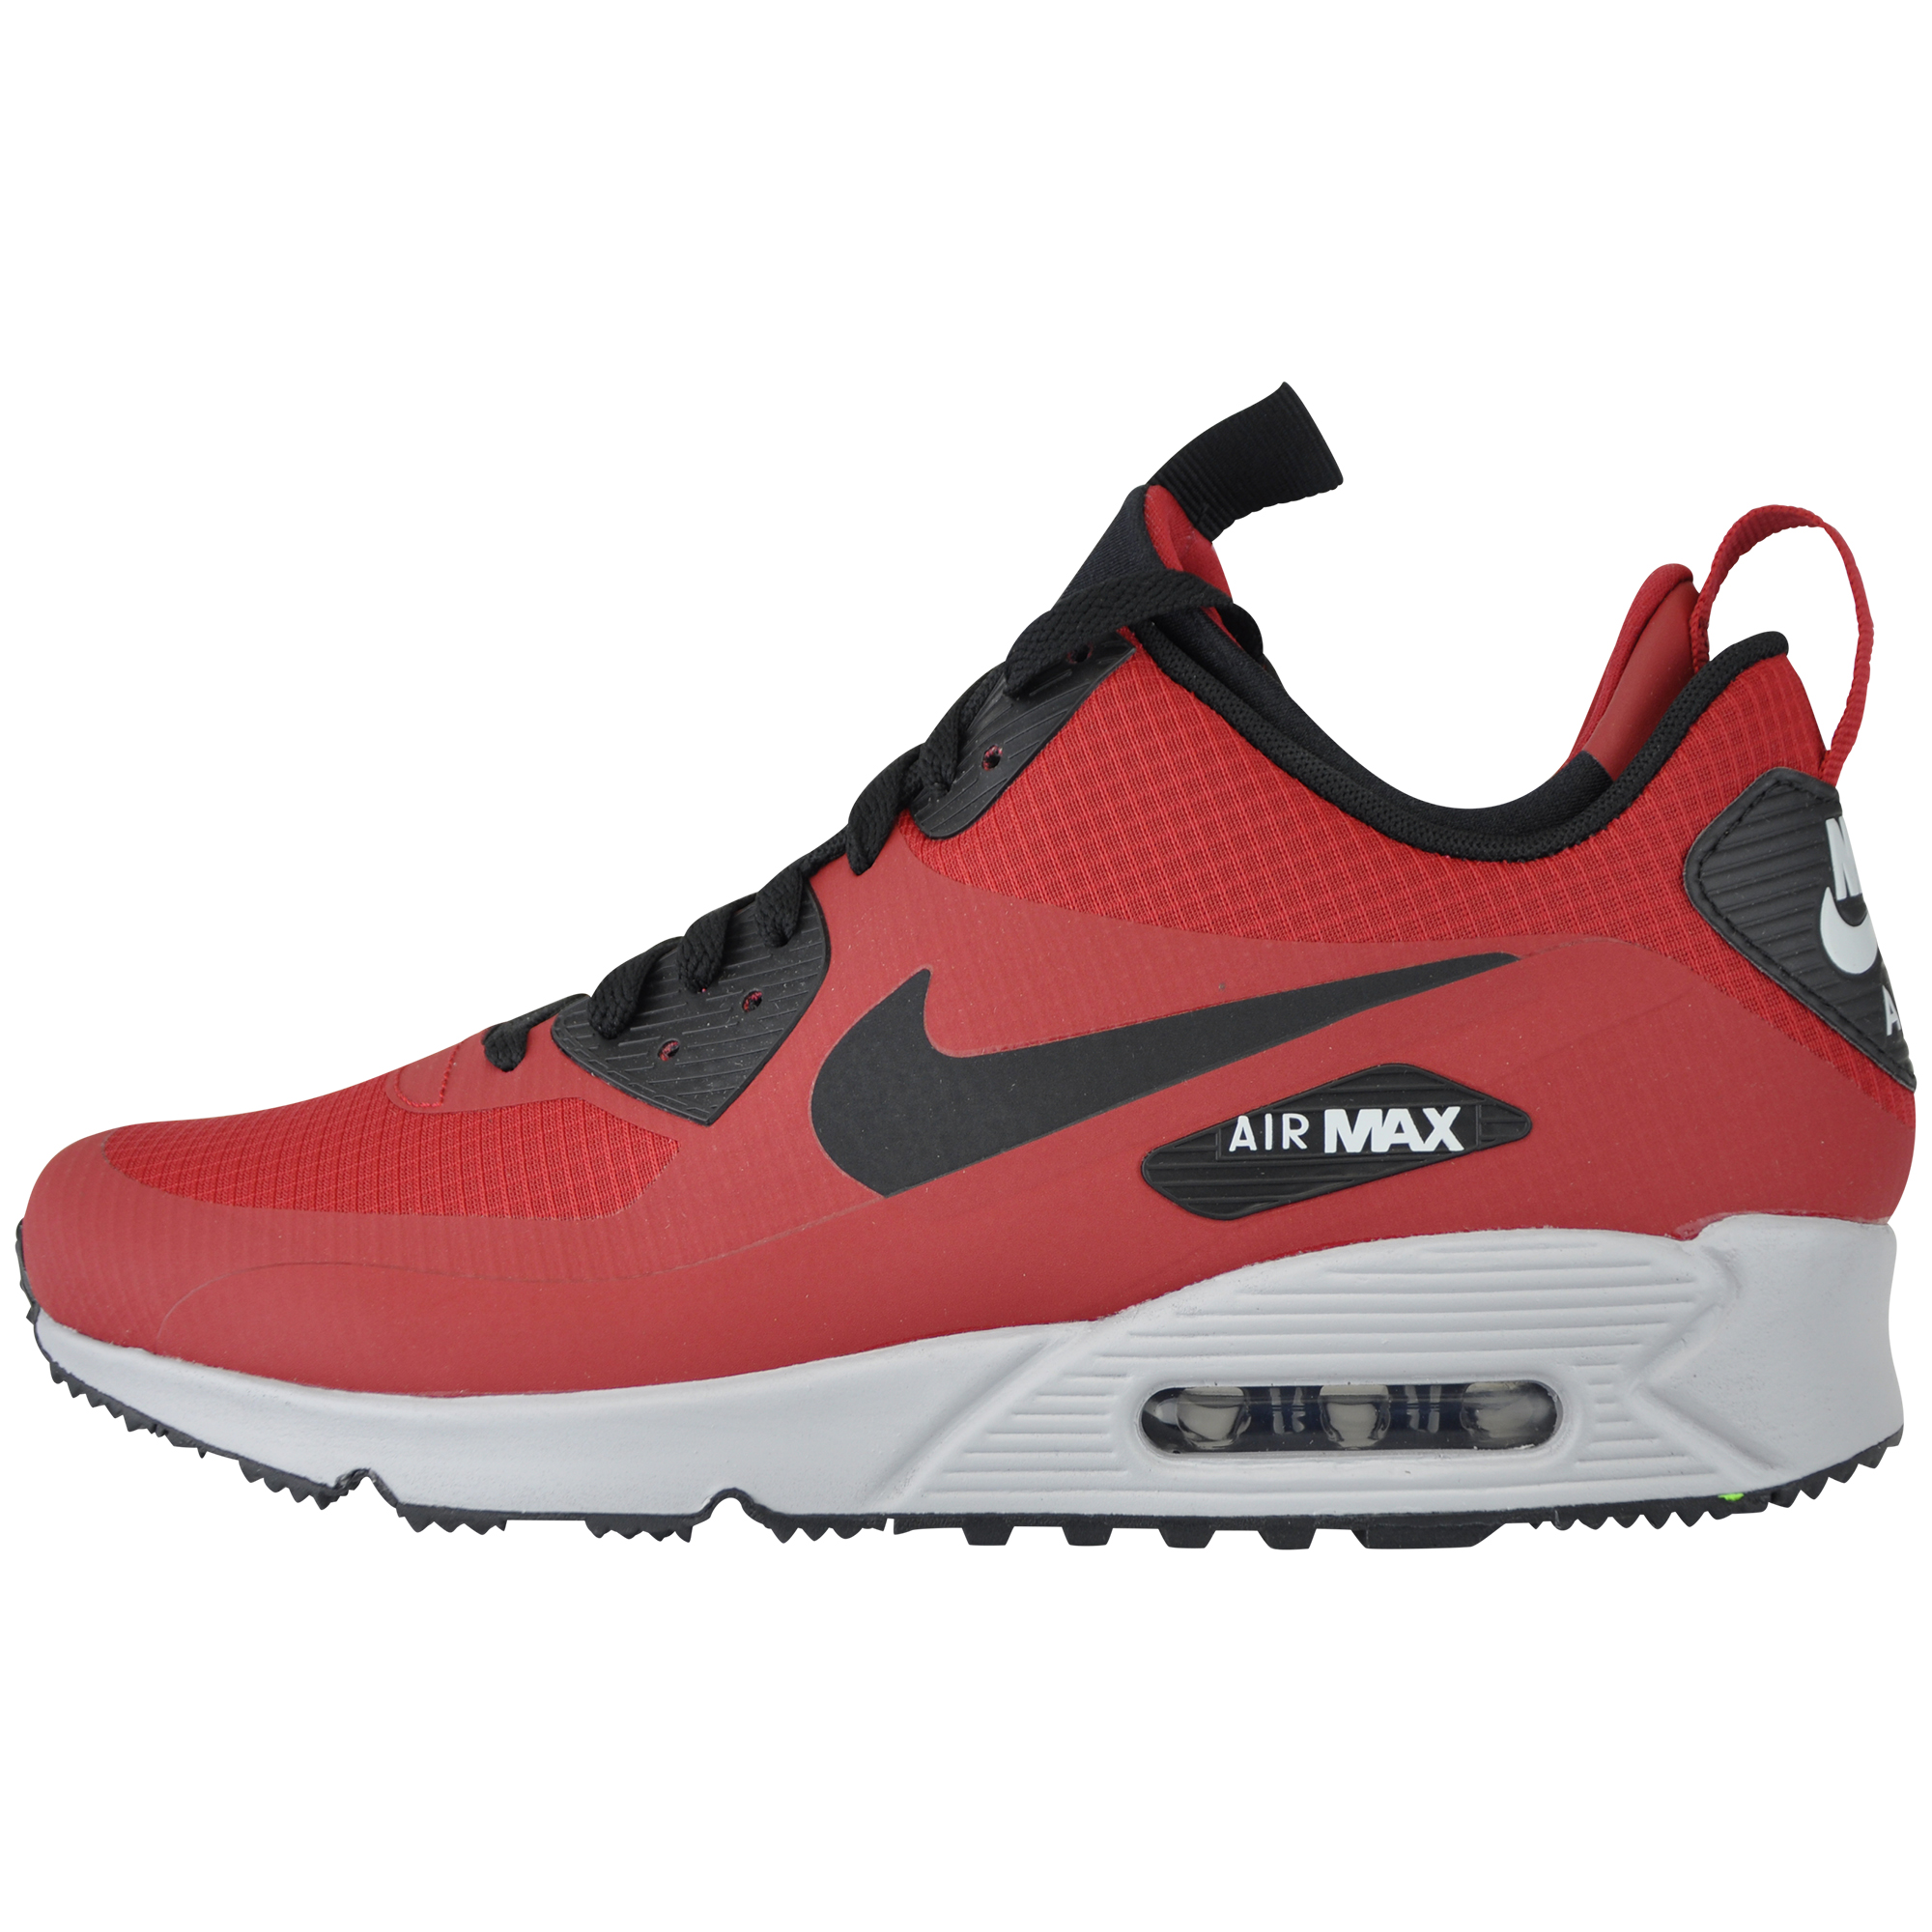 nike air max 90 thea sneakerboot mid wntr tavas lthr. Black Bedroom Furniture Sets. Home Design Ideas